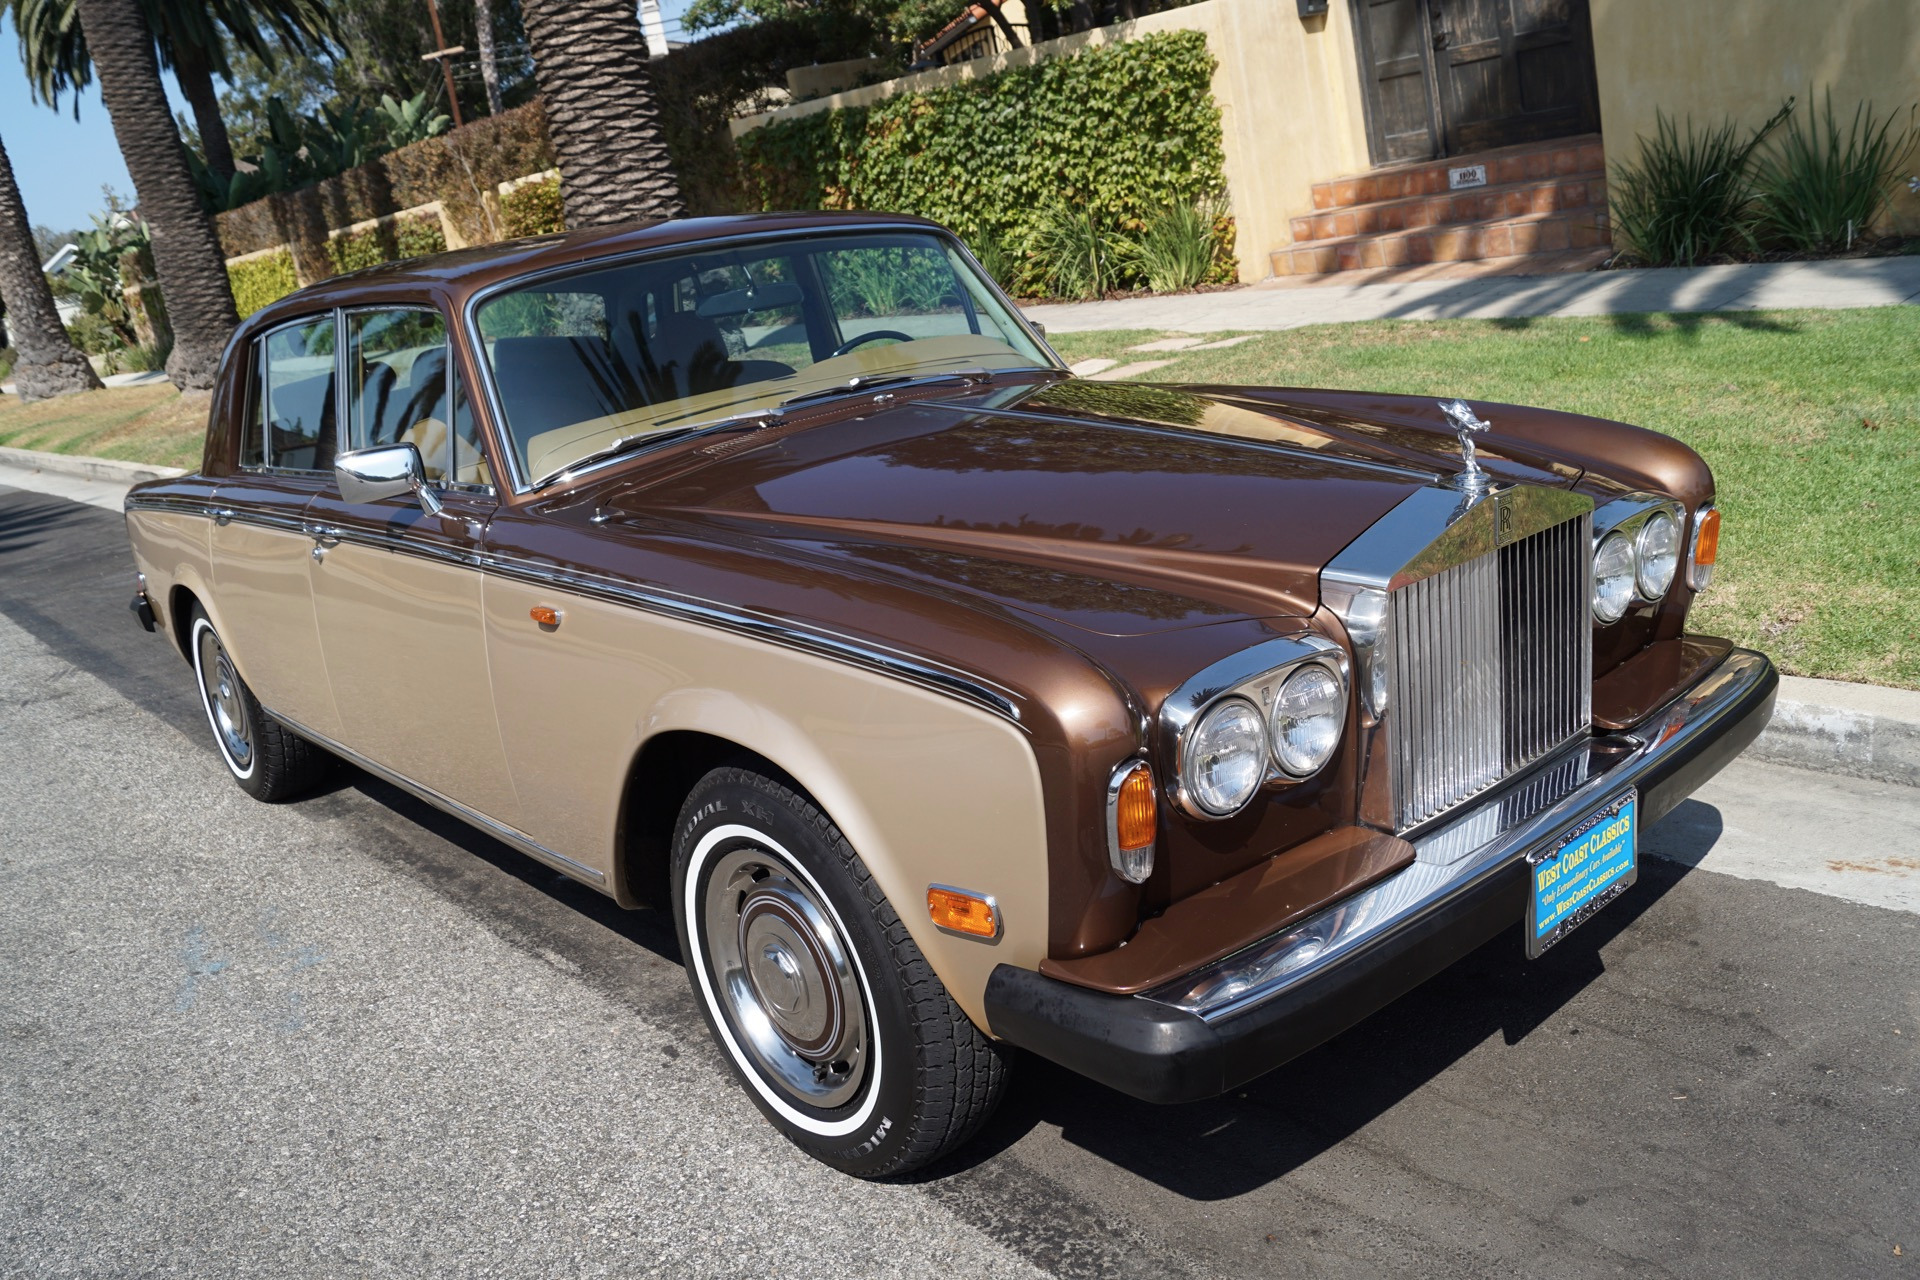 1979 rolls royce silver shadow ii tan leather stock 782 for sale near torrance ca ca rolls. Black Bedroom Furniture Sets. Home Design Ideas